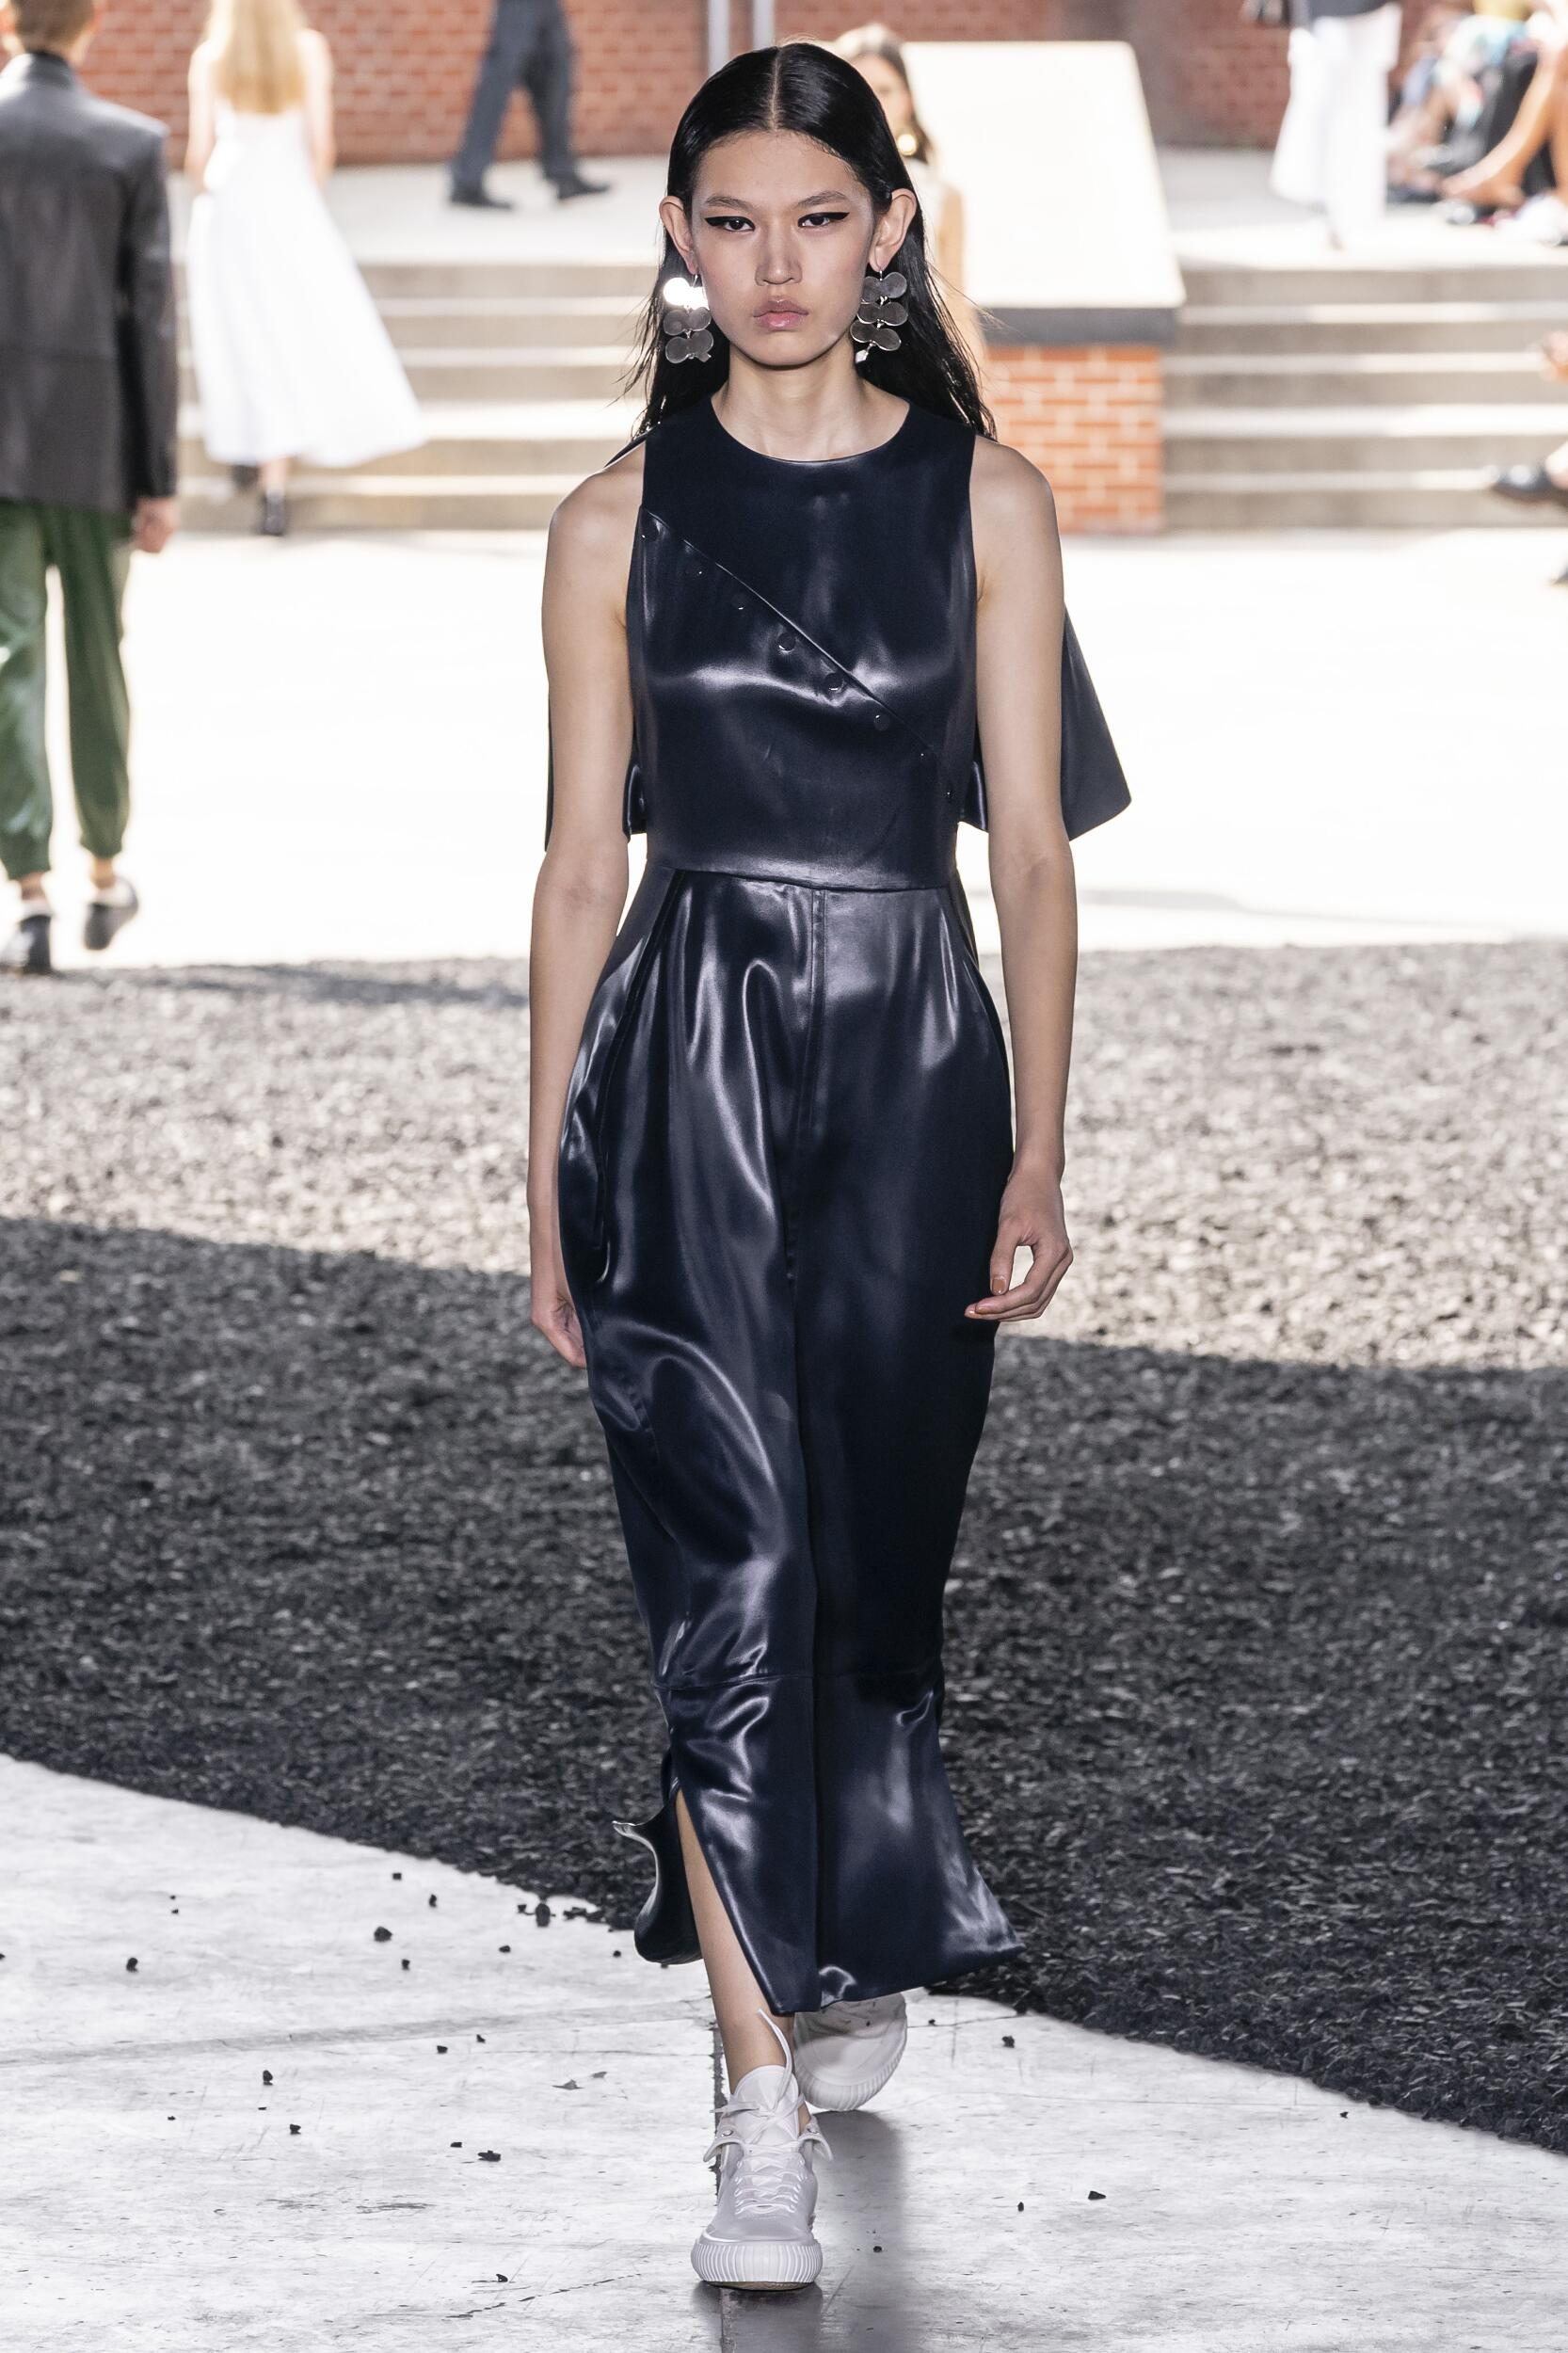 Spring Summer Fashion Trends 2020 3.1 Phillip Lim